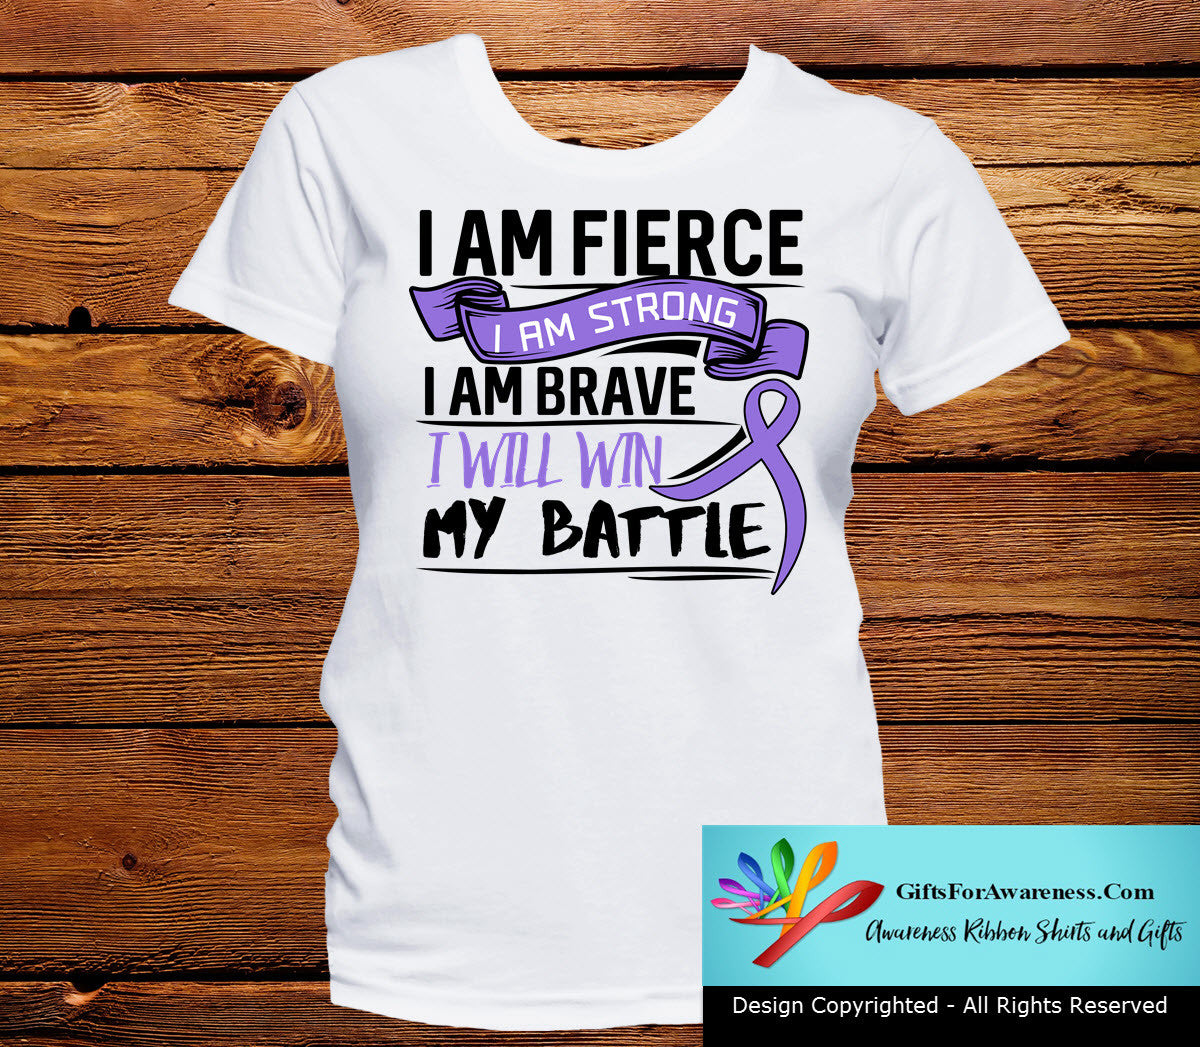 Hodgkins Lymphoma I Am Fierce Strong and Brave Shirts - GiftsForAwareness